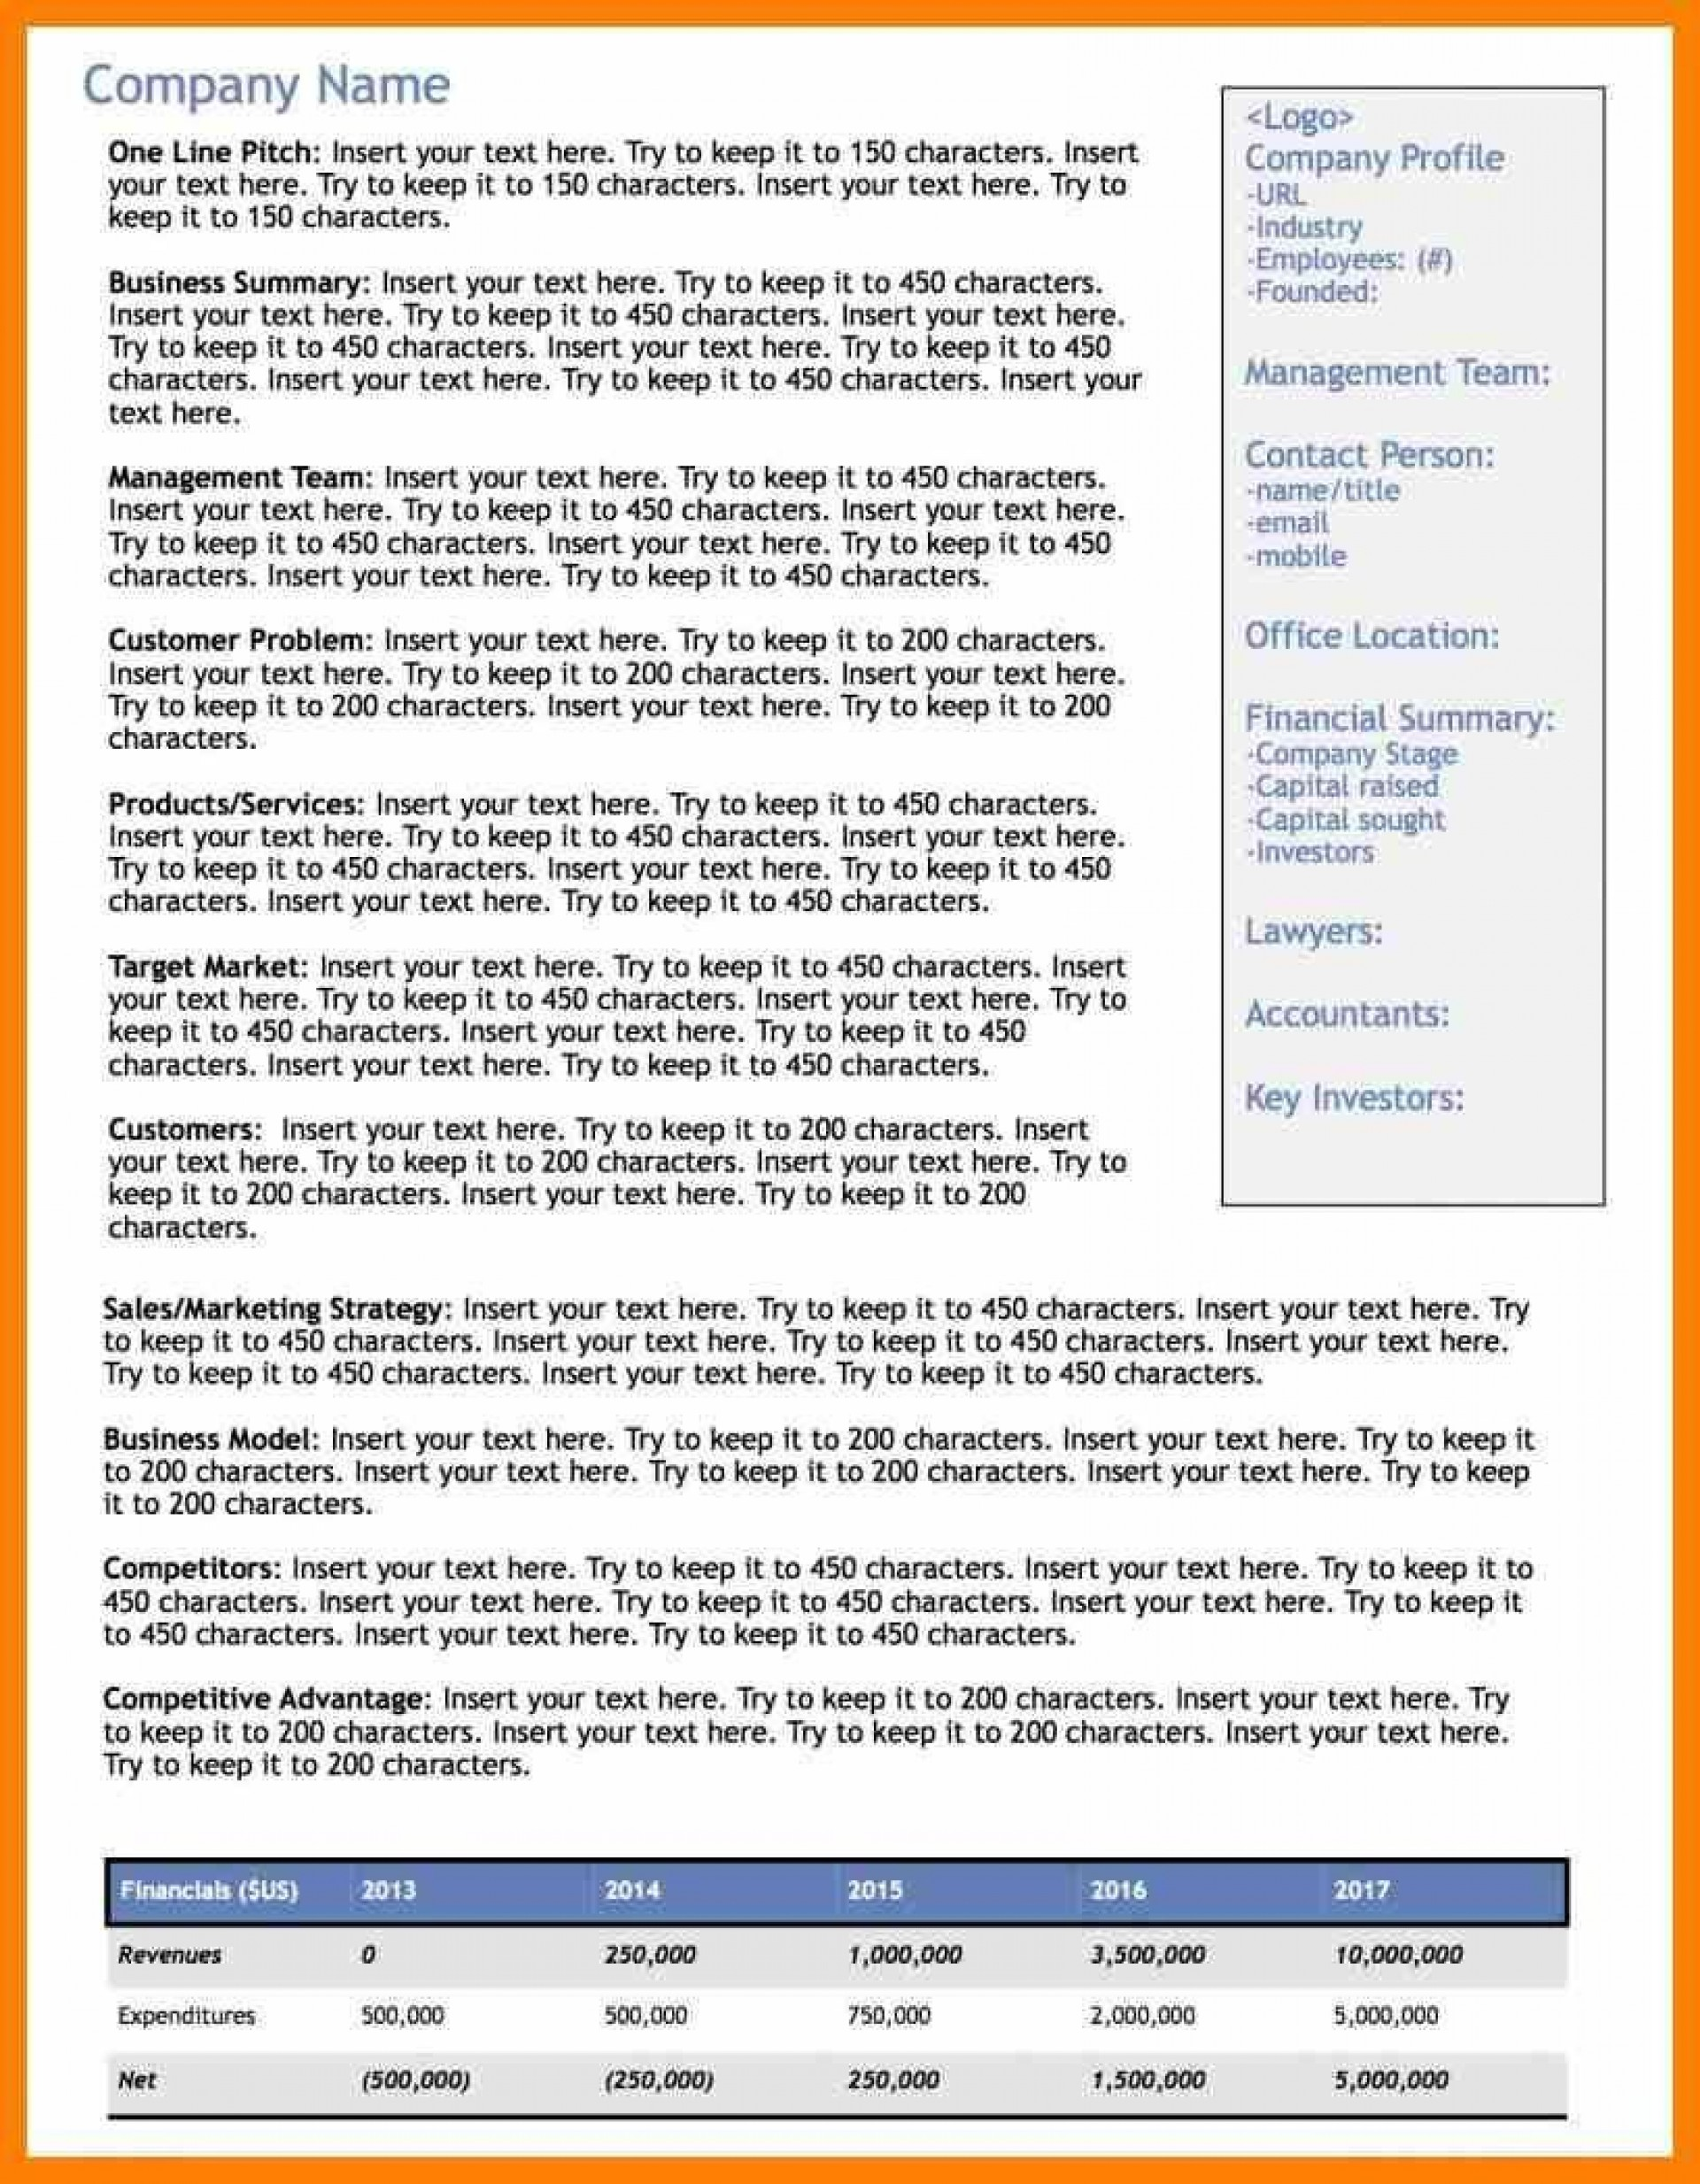 002 Wonderful Executive Summary Word Template Free Download Concept 1920